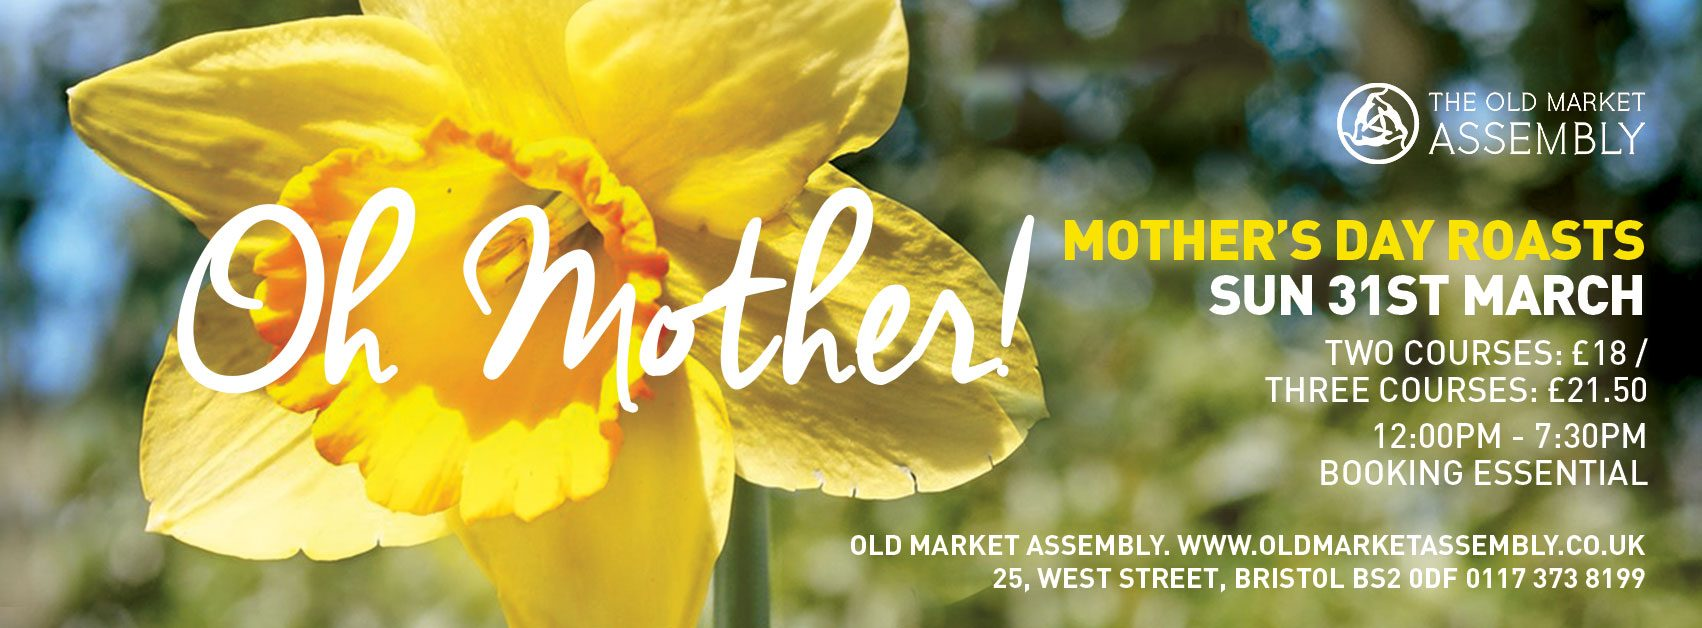 Assembly-Mothers-day-banner